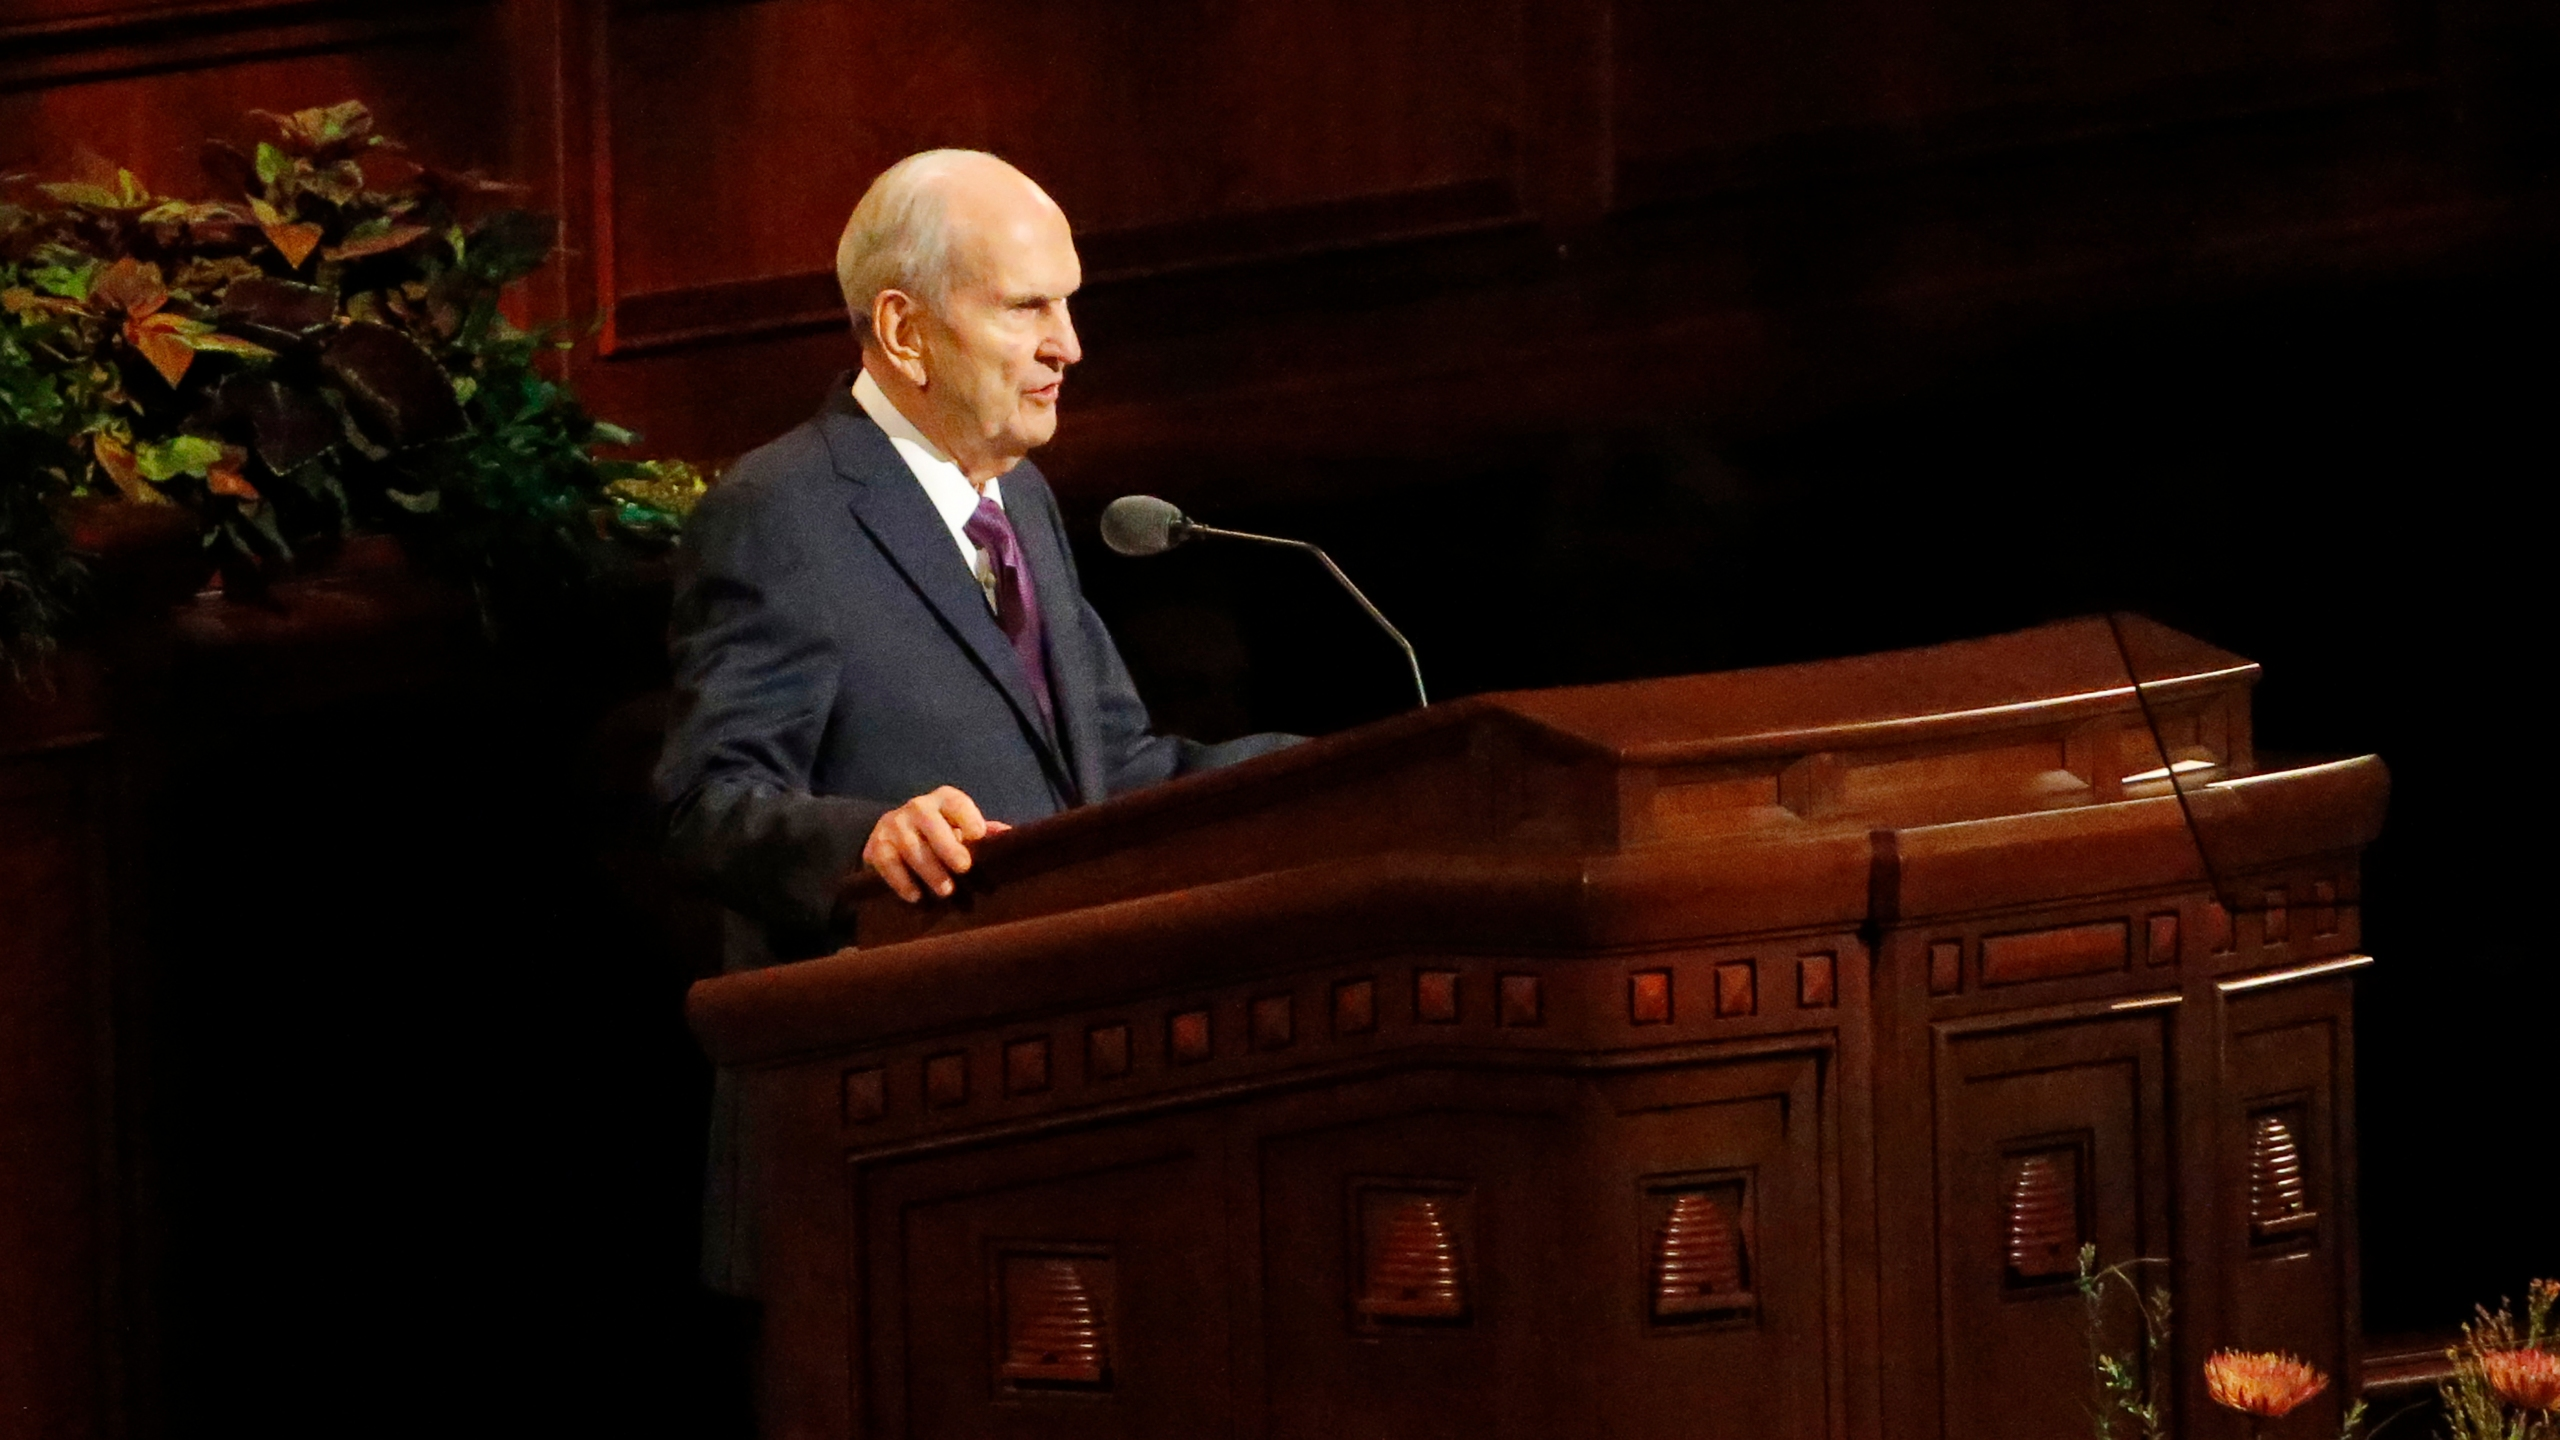 In this Oct. 5, 2019 file photo, President Russell M. Nelson speaks during The Church of Jesus Christ of Latter-day Saints' twice-annual church conference in Salt Lake City. (AP Photo/Rick Bowmer, File)